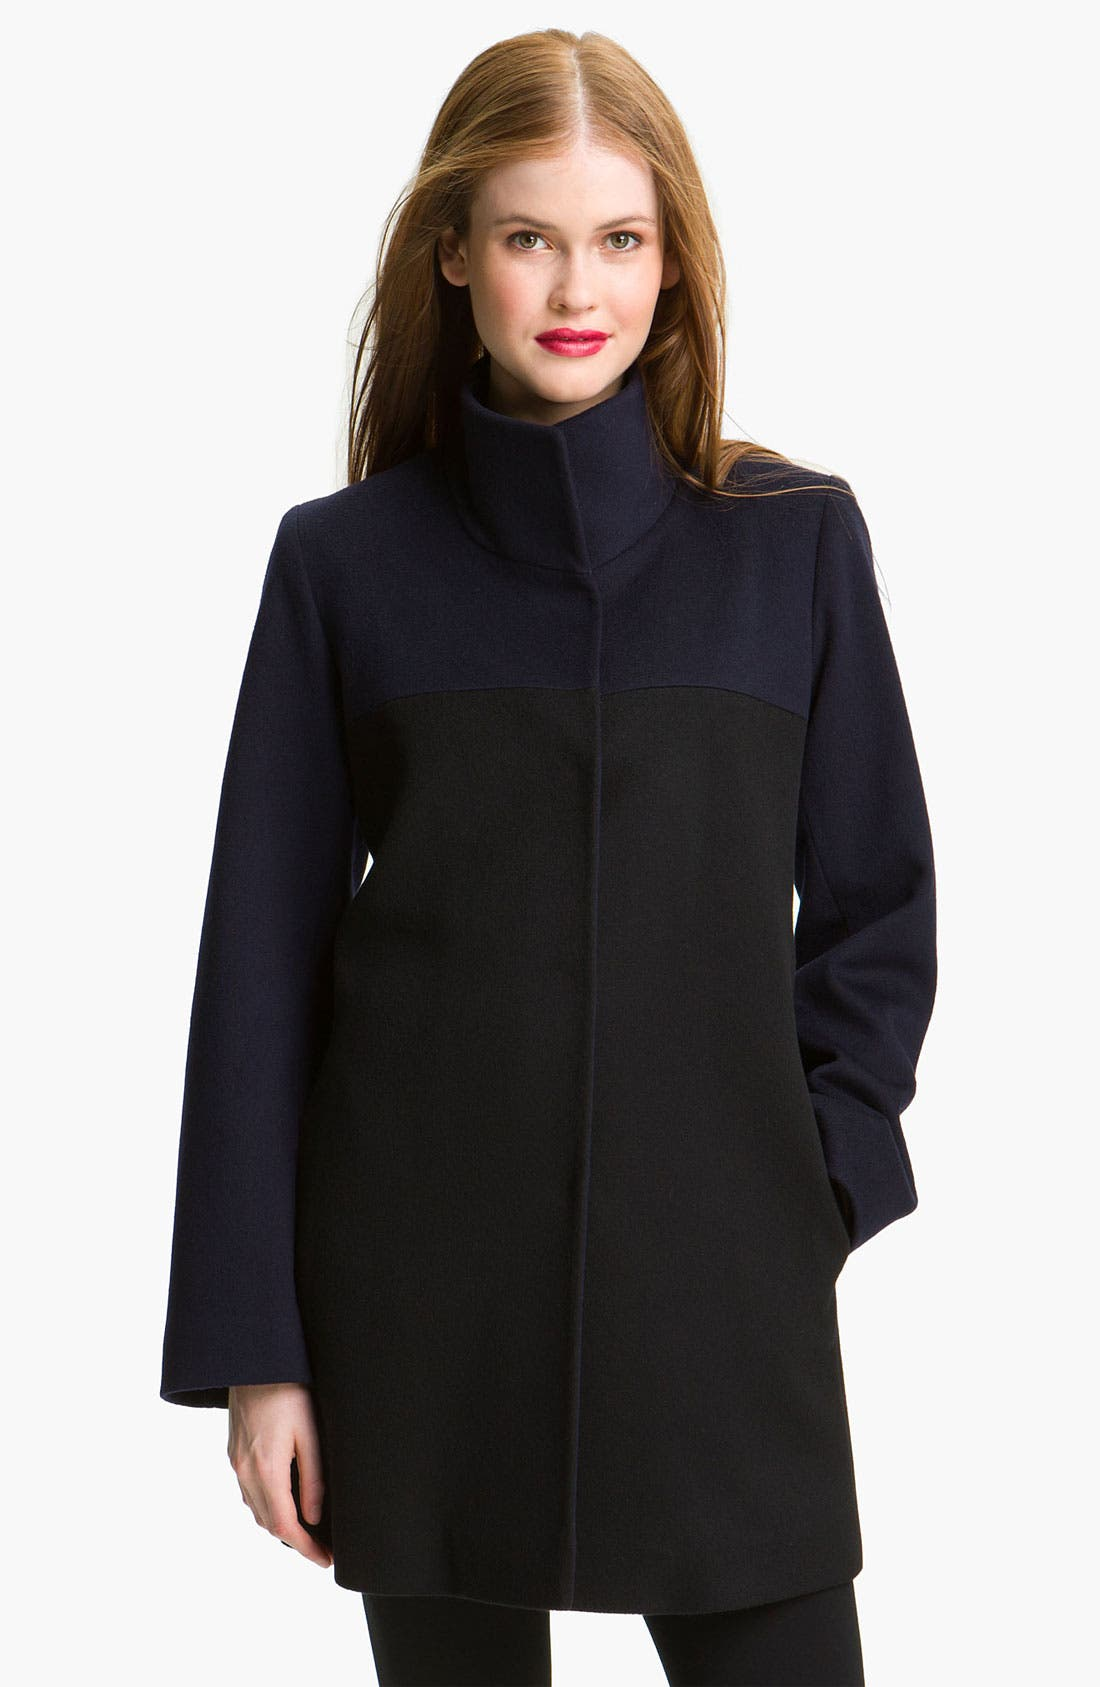 Main Image - Fleurette Two Tone Wool Coat (Online Exclusive)